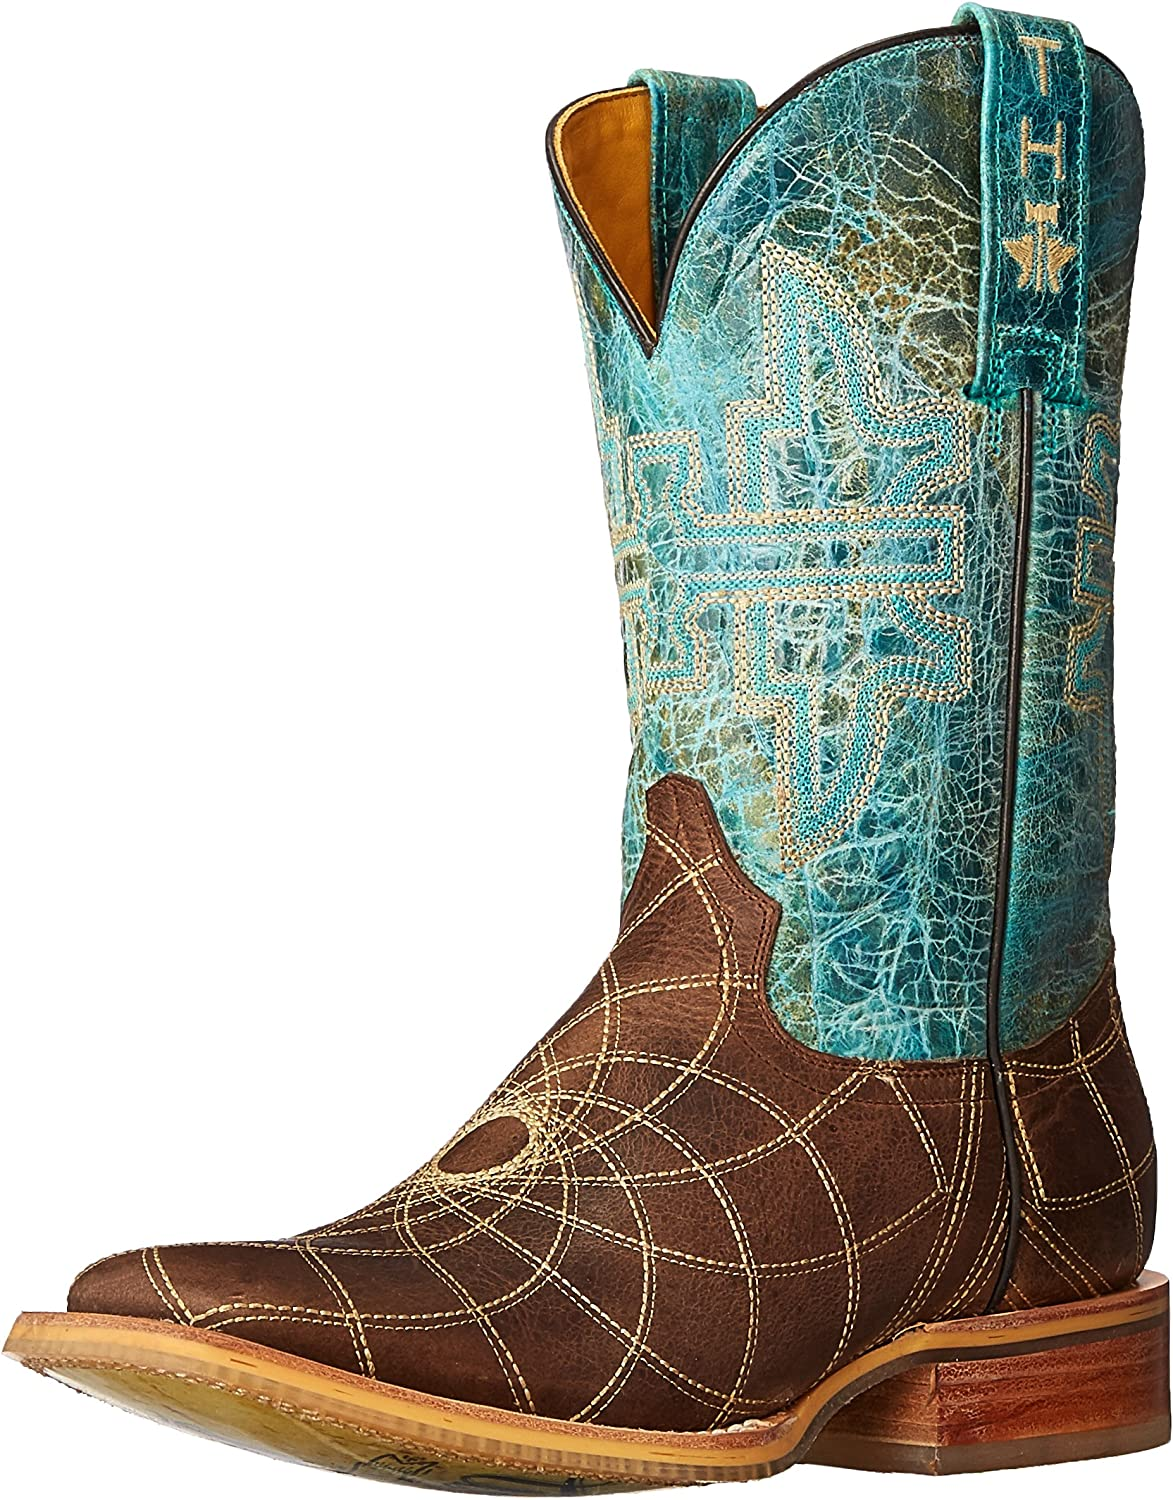 Ankle Boots Footware Cowgirl Boots Winter Leather Boots Leather Shoes Women Dreamcatcher Boho Boots Custom Printed Boots Rain Boots